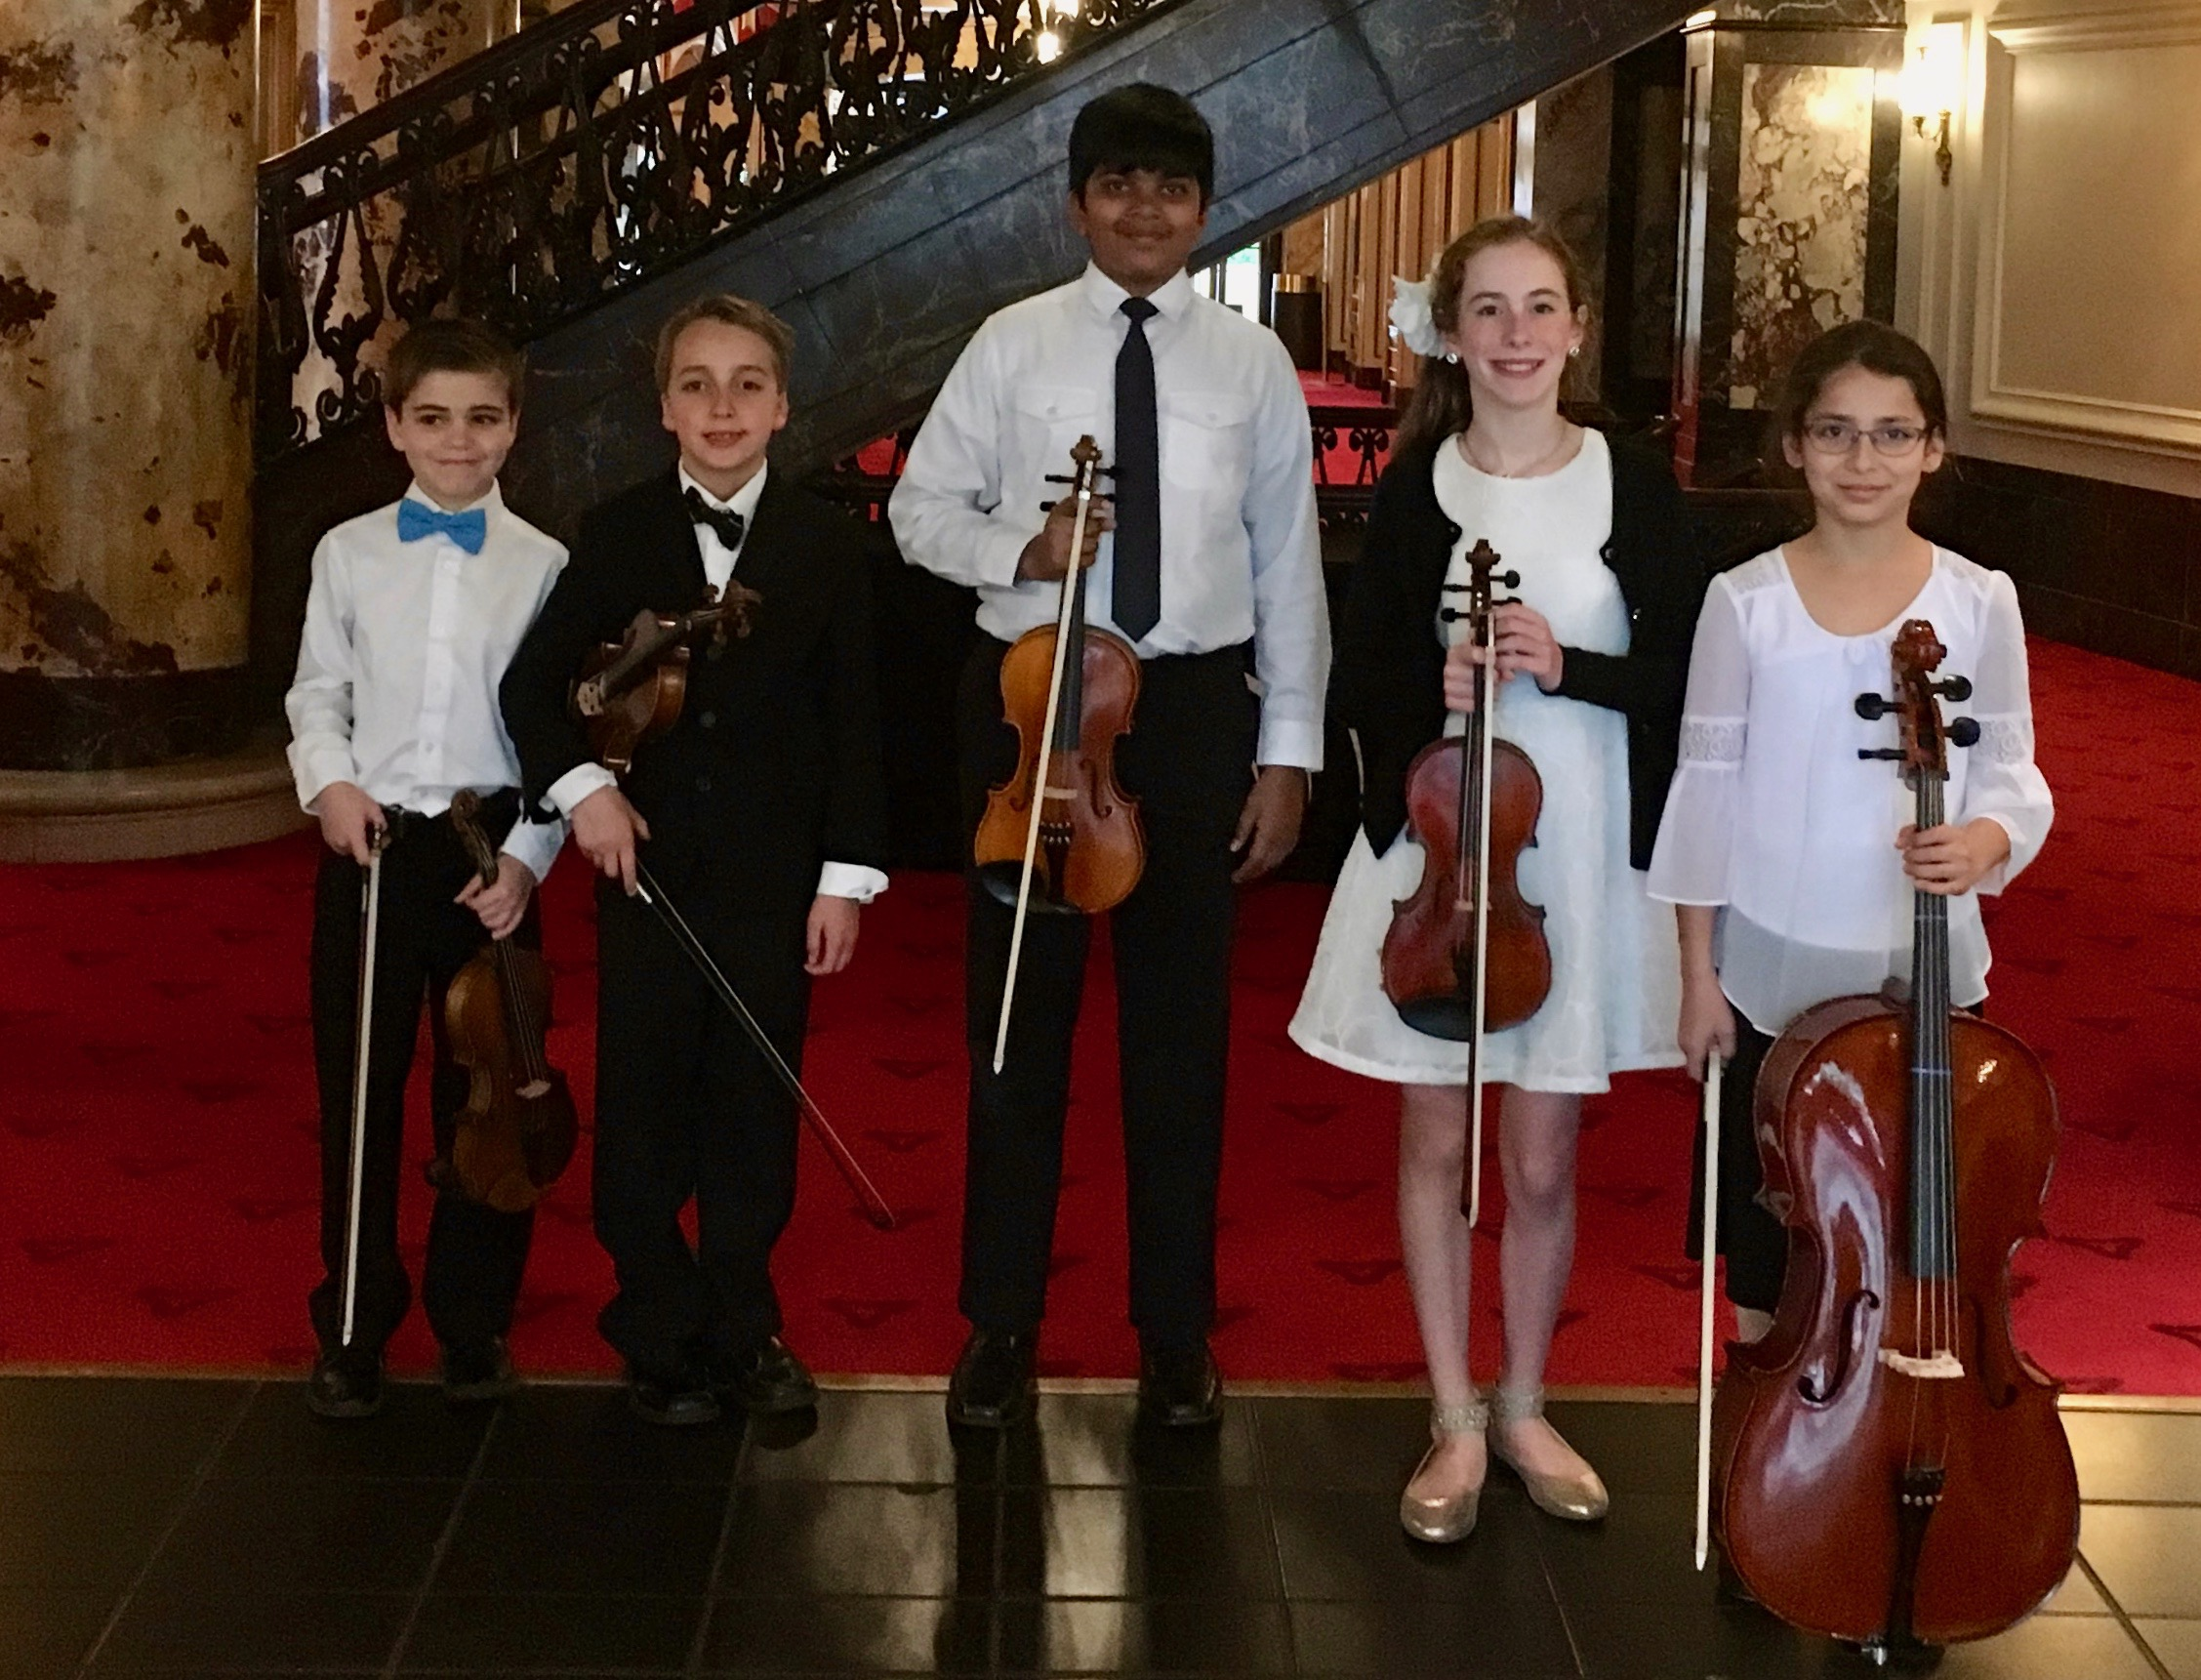 PYSO Pre-Concert - Sunday, May 5, 2019The Tintin Quintet (pictured - Brady, Julien, Aravind, Stella, and Ozlem), along with the Lark Quartet, Goldenrod Quartet, and the Taylor Trio, performed in the Heinz Hall lobby before the Spring Concert of the Pittsburgh Youth Symphony Orchestra.